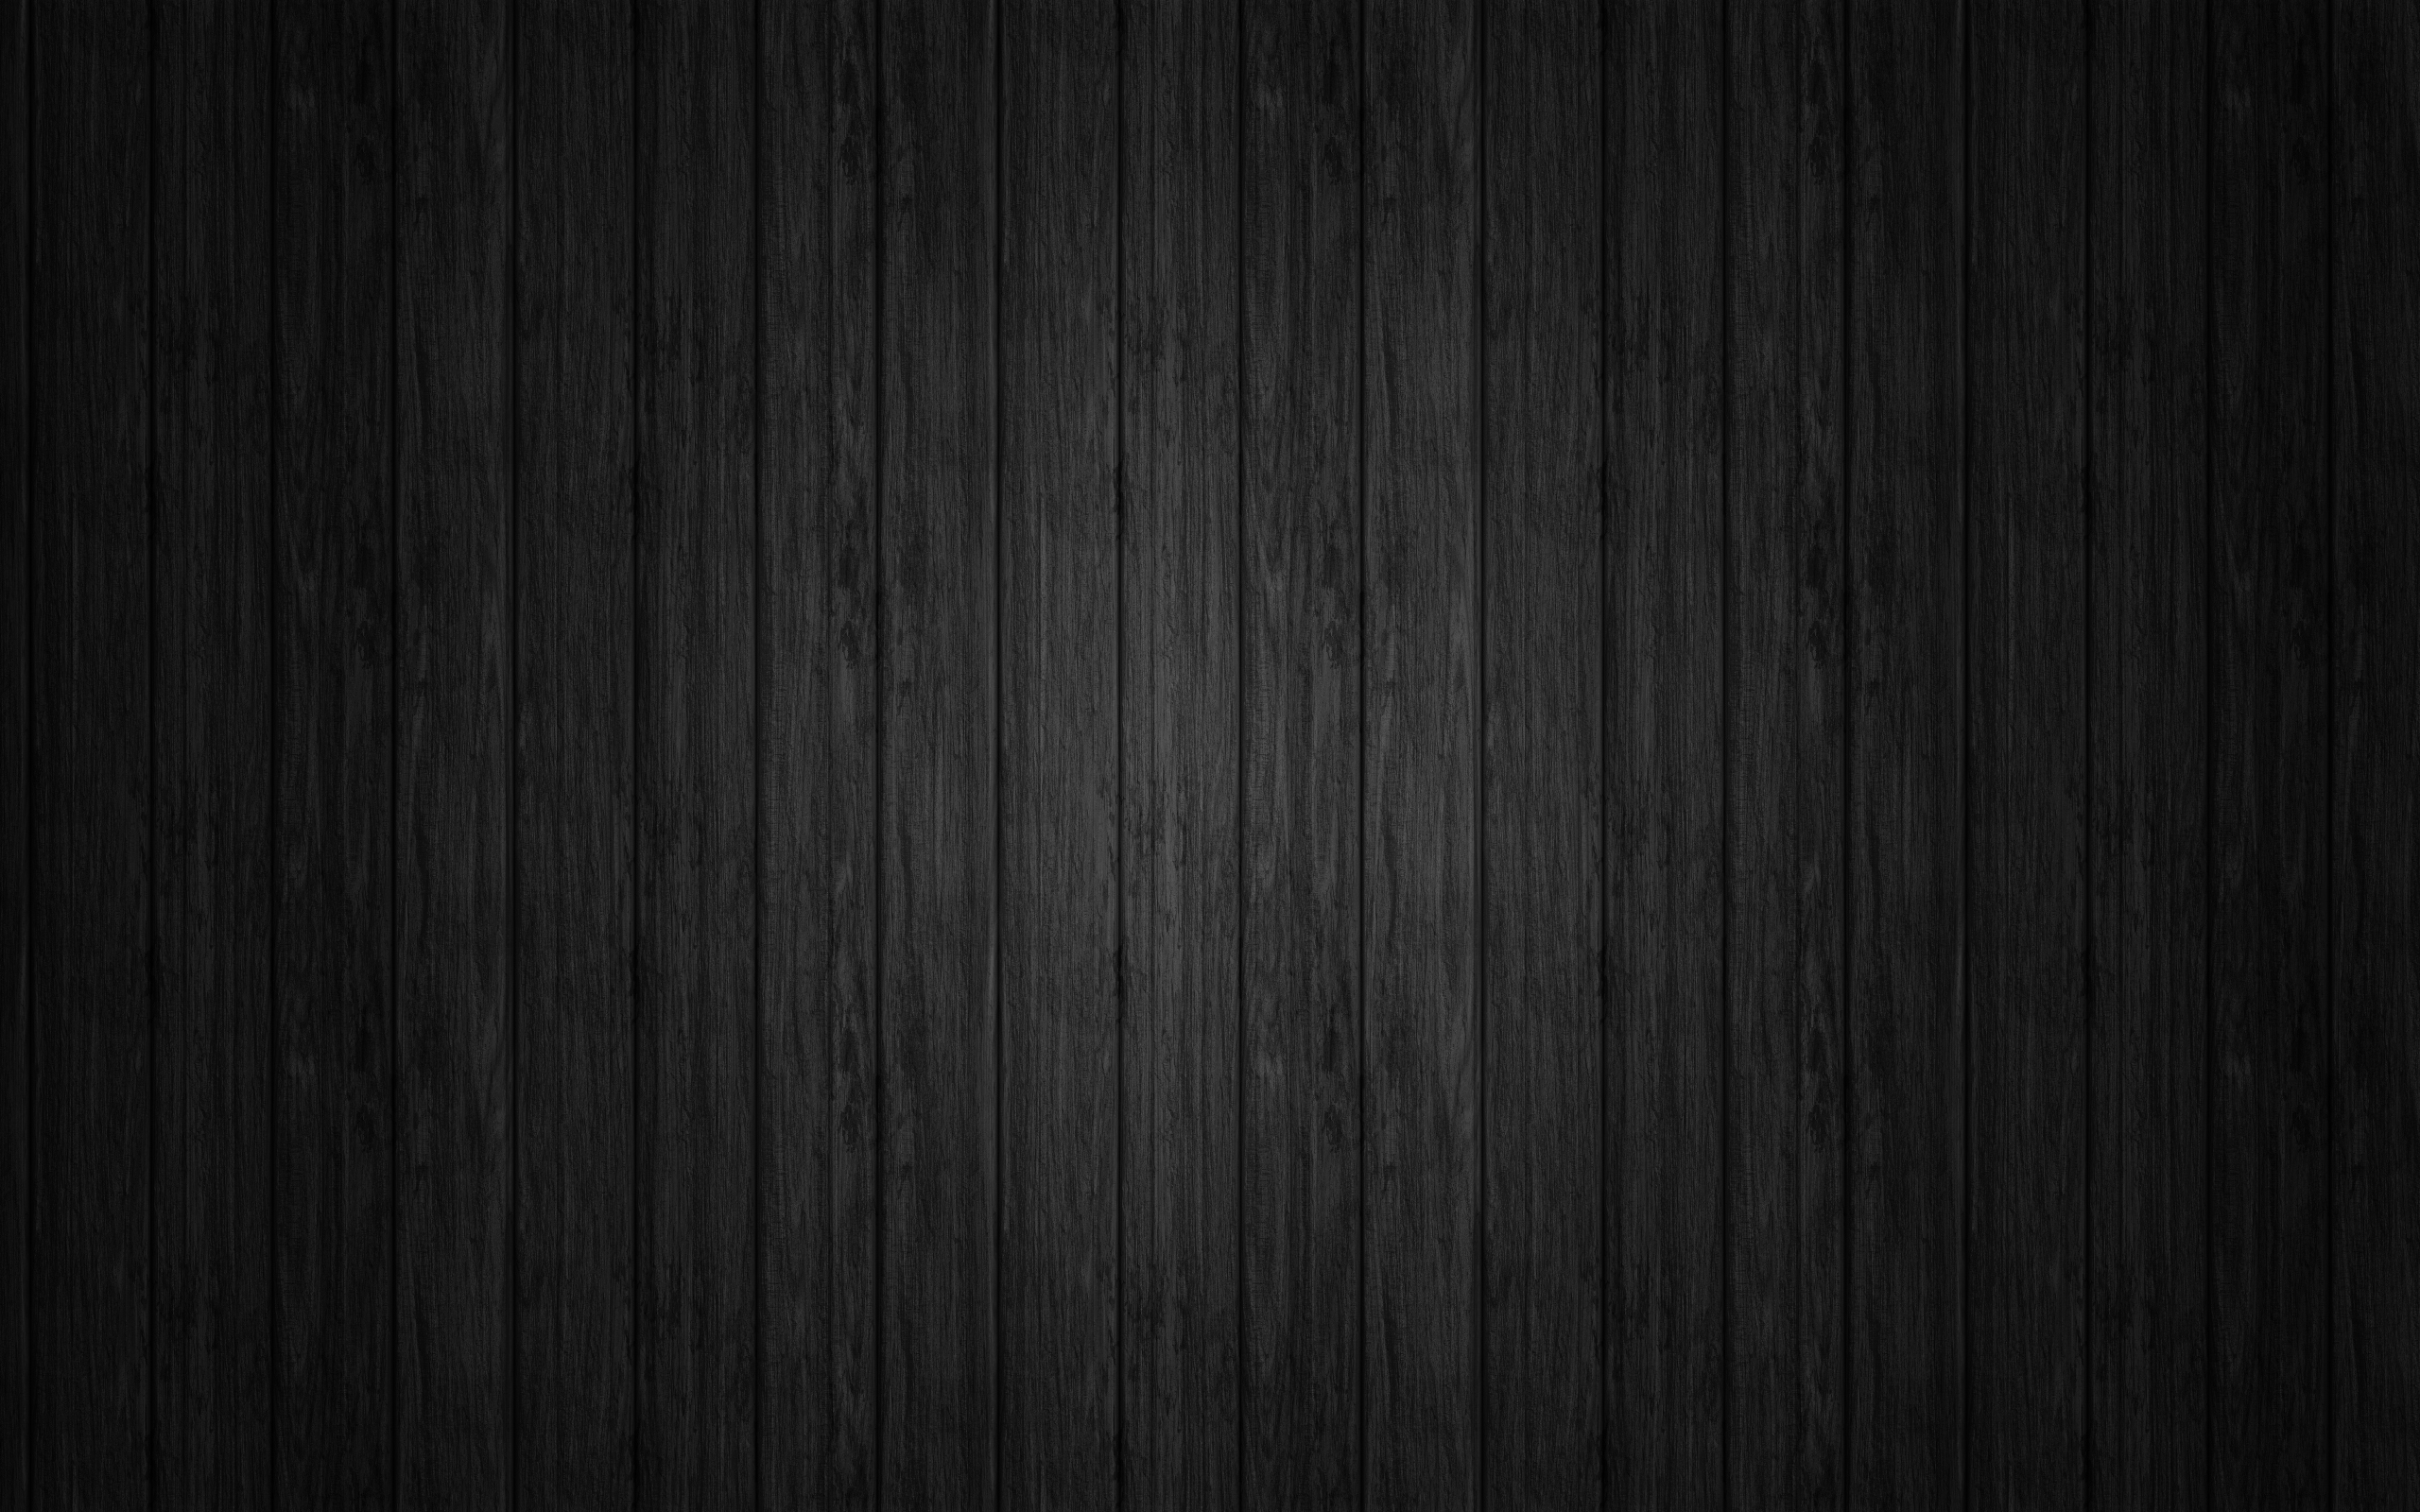 I found this image by using this Bing Image search in which I searched for 'Background Black'. Instead of using the default black ...